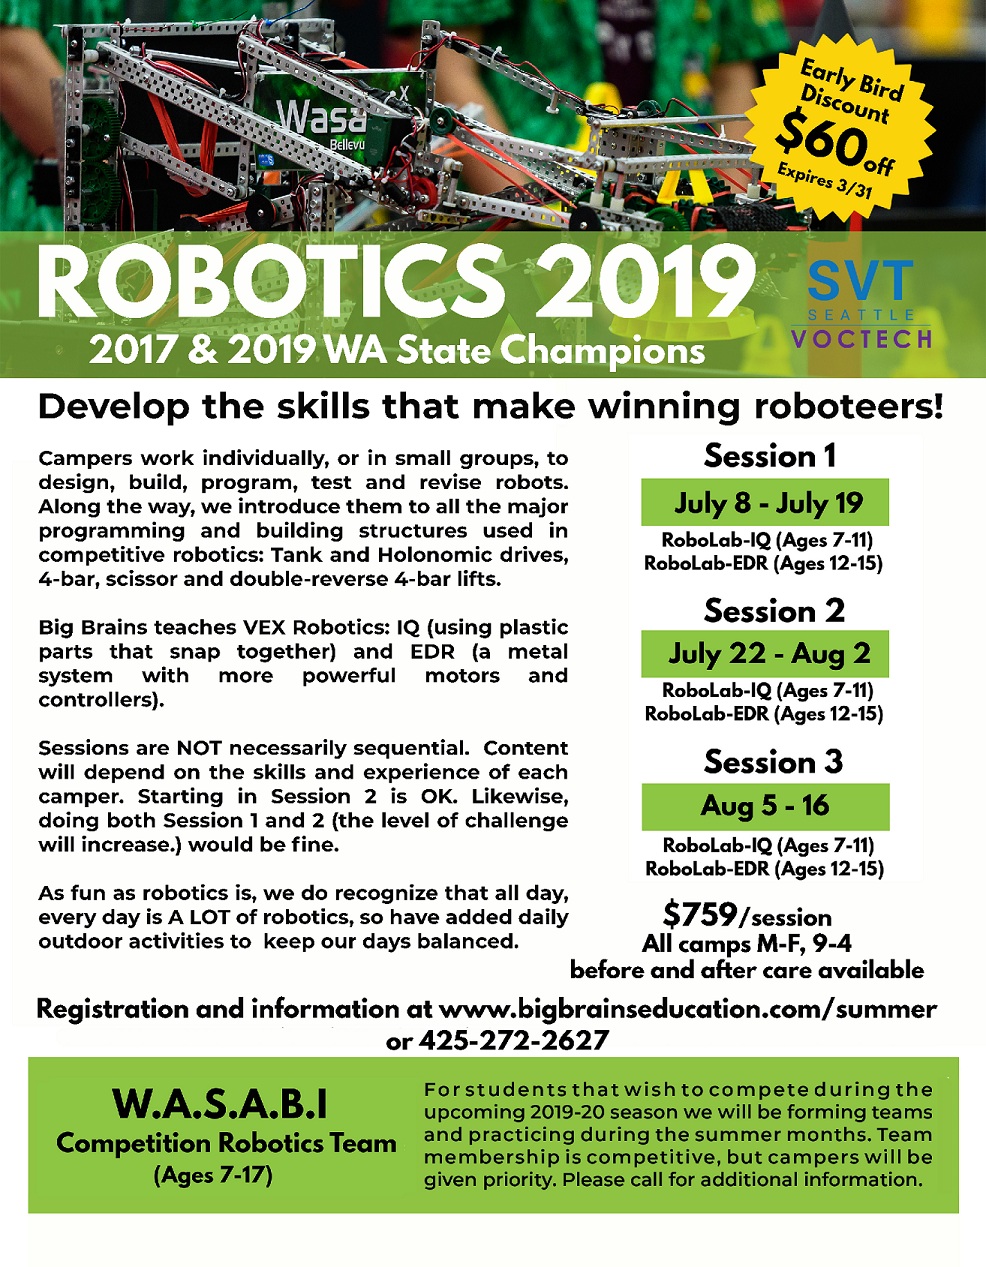 2019-robotics-summer-camps-bellevue-washington-big-brains-education-brochure